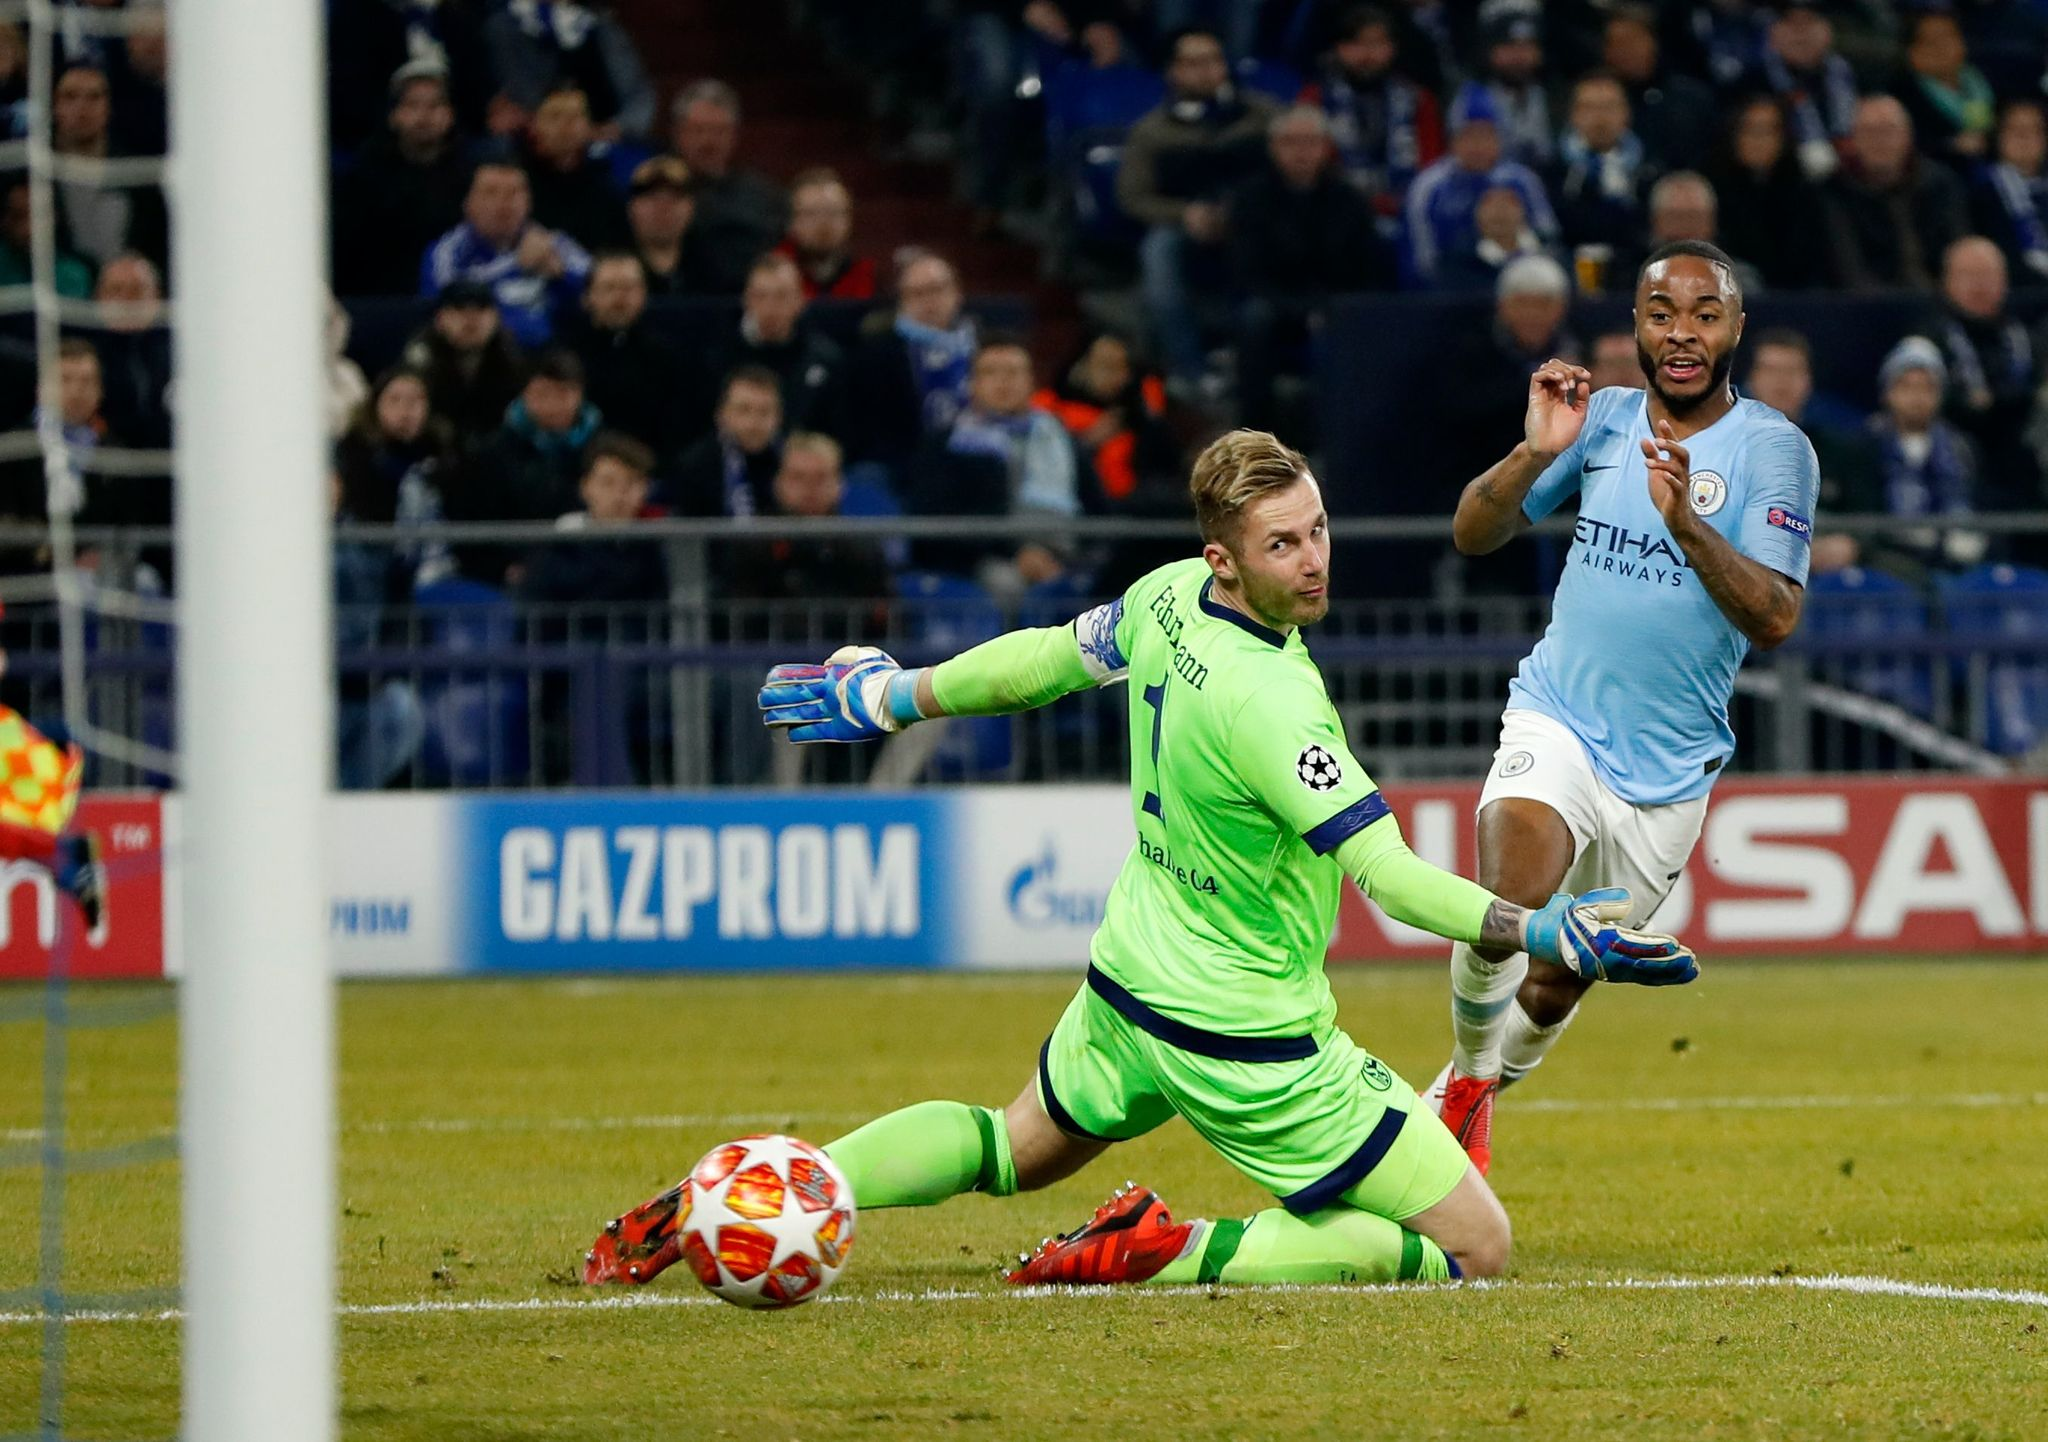 Manchester Citys English forward Raheem <HIT>Sterling</HIT> scores the winning 2-3 goal in front of Schalkes German goalkeeper Ralf Faehrmann during the UEFA Champions League round of 16 first leg football match between Schalke 04 and Manchester City on February 20, 2019 in Gelsenkirchen, Germany. (Photo by Odd ANDERSEN / AFP)